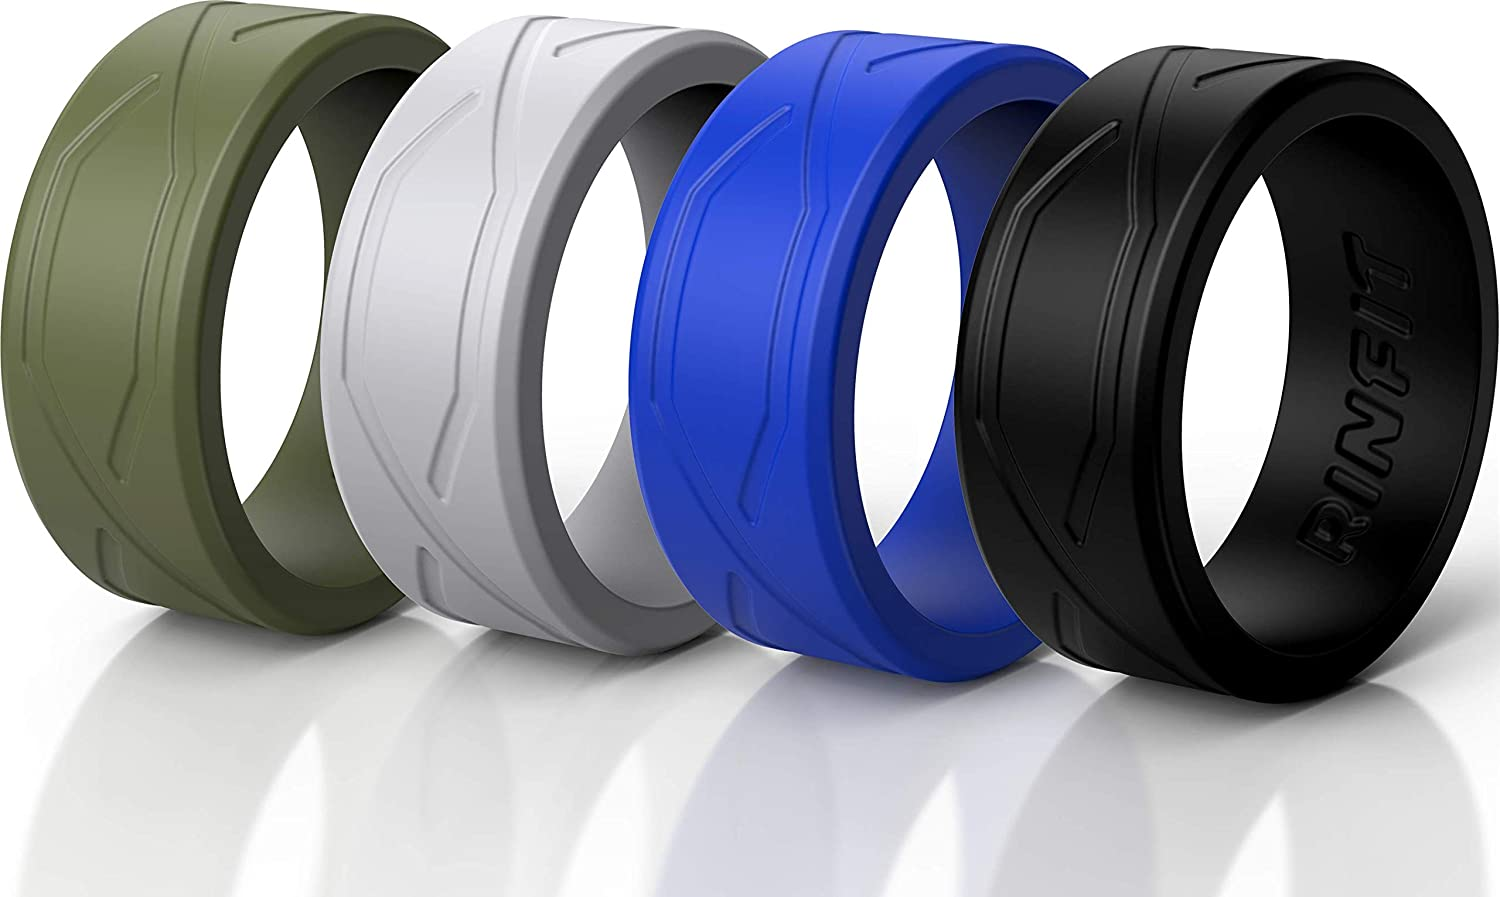 Rinfit Silicone Wedding Rings for Men Women - 1 Bands 6 5 4 Pa Max 87% OFF Manufacturer regenerated product